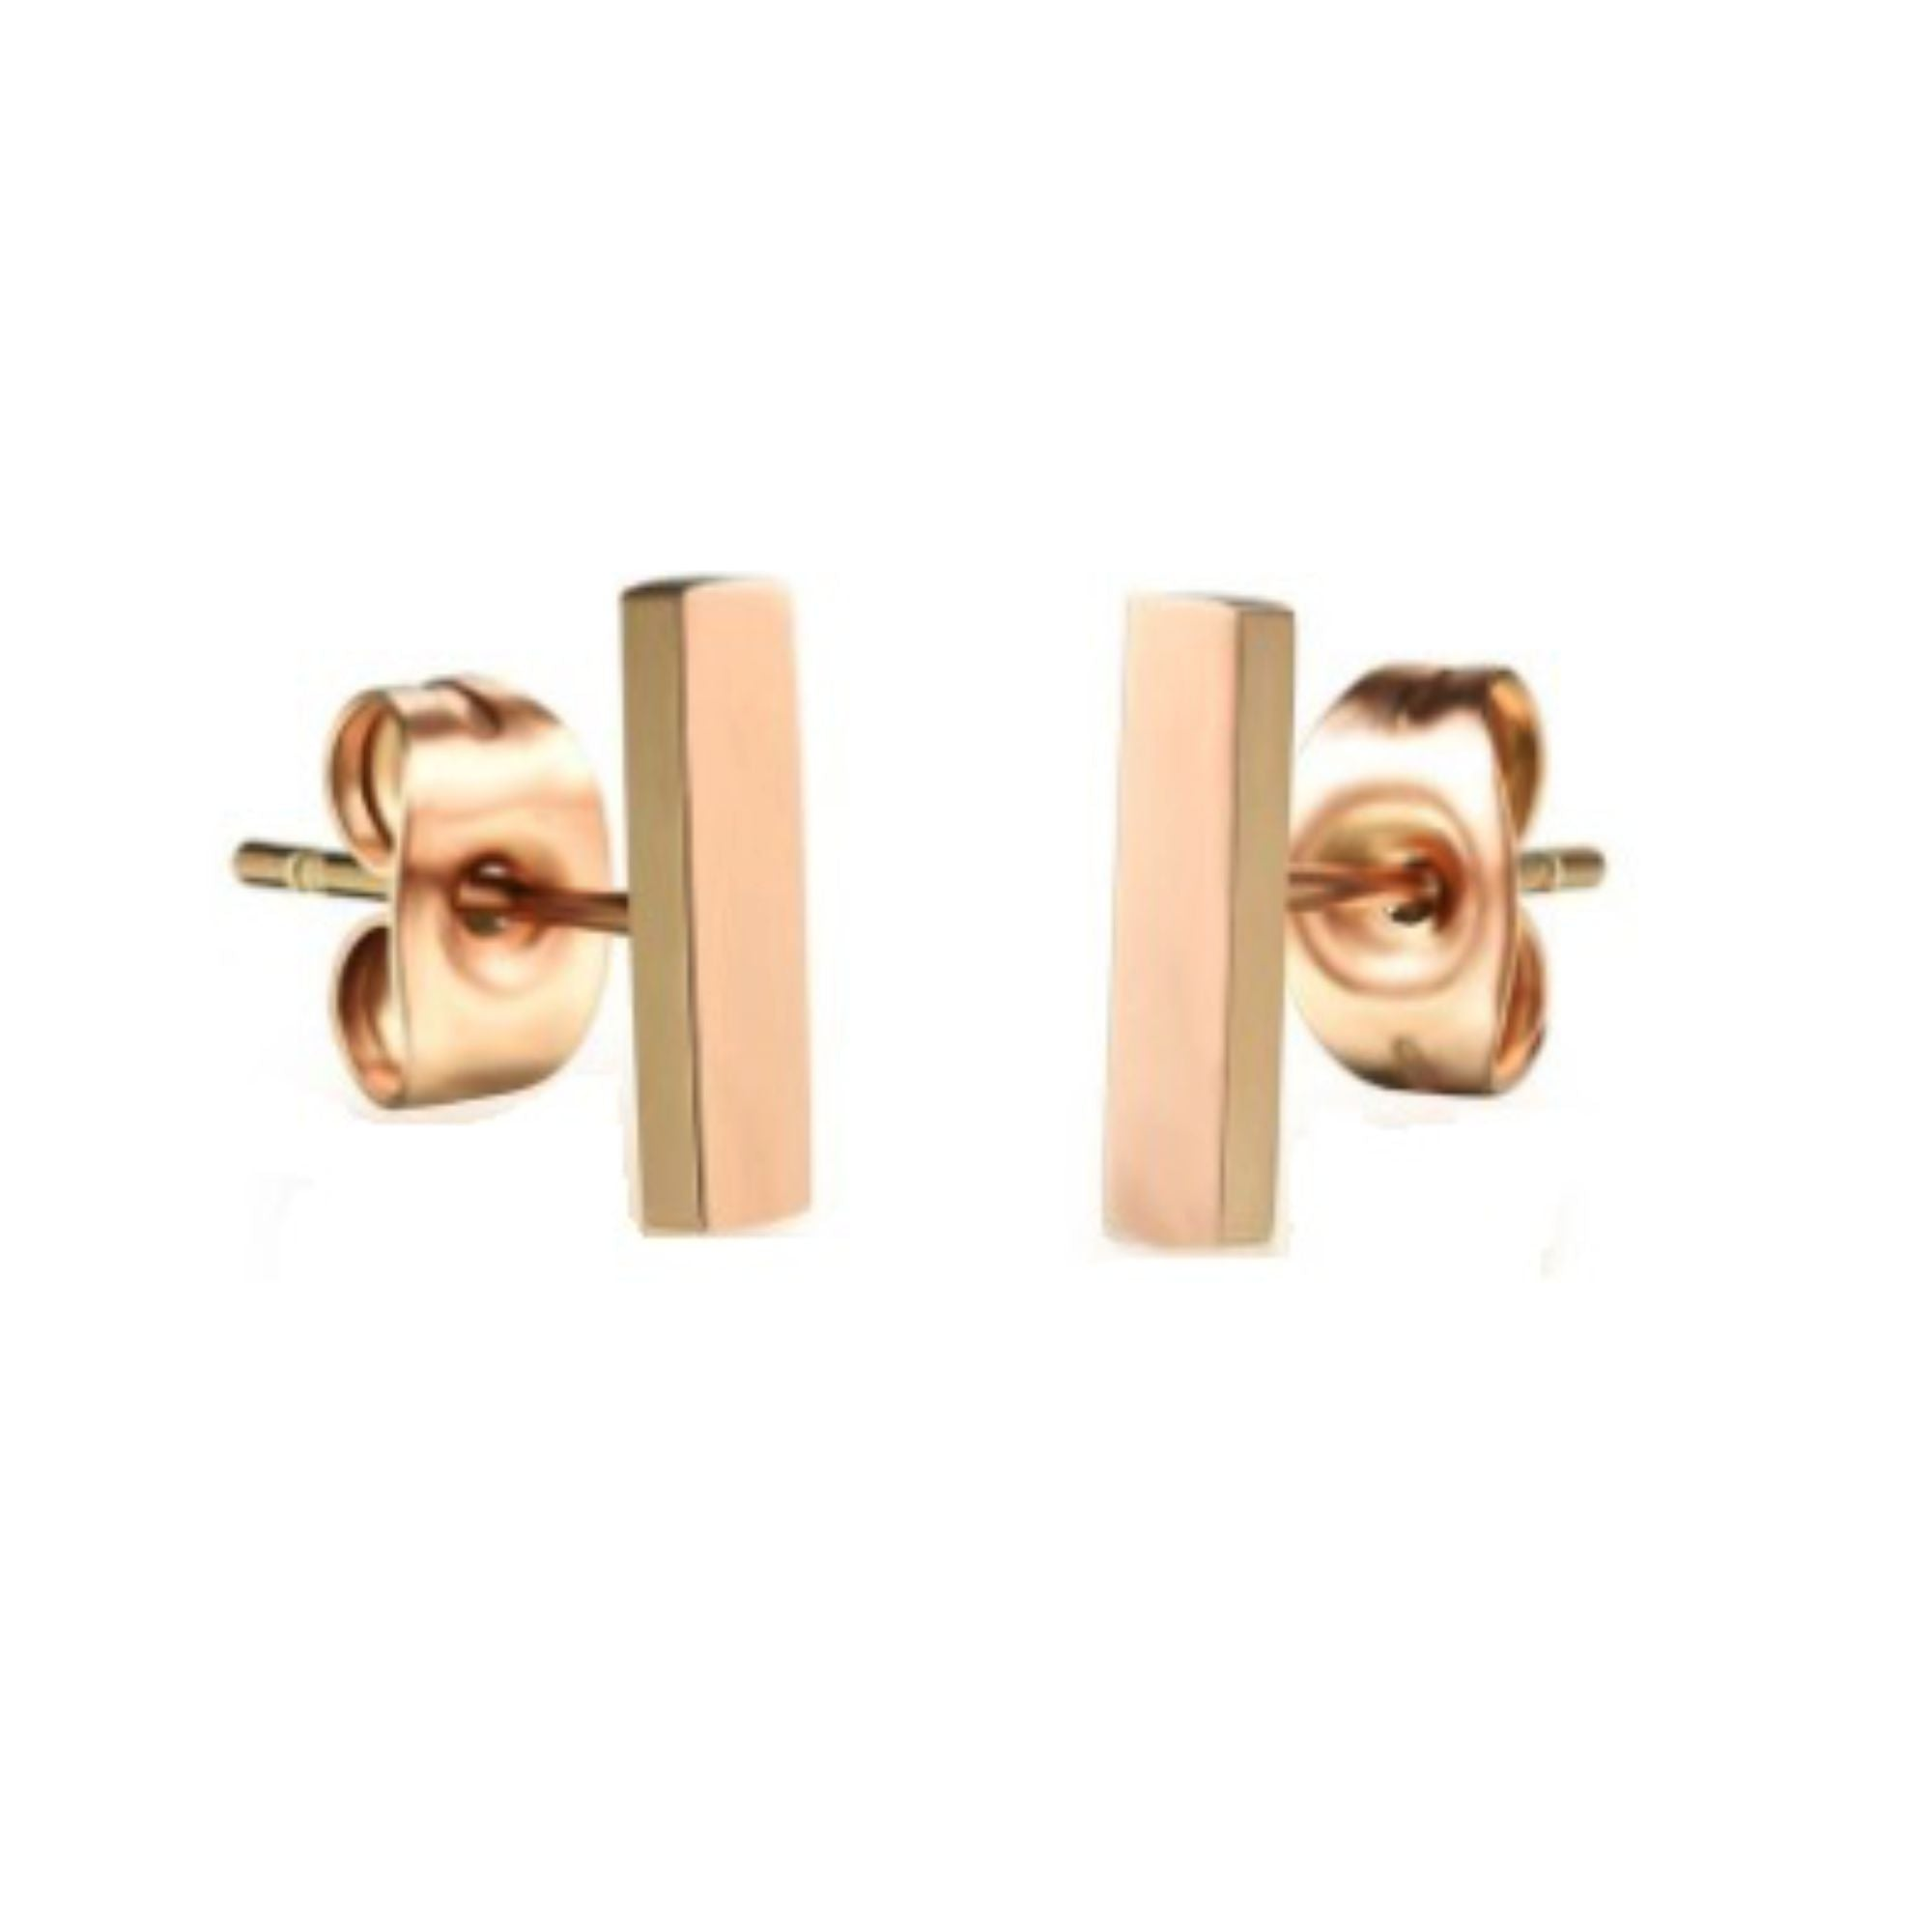 18K GP Rose Gold Titanium Stainless Steel Bar Stud Earrings